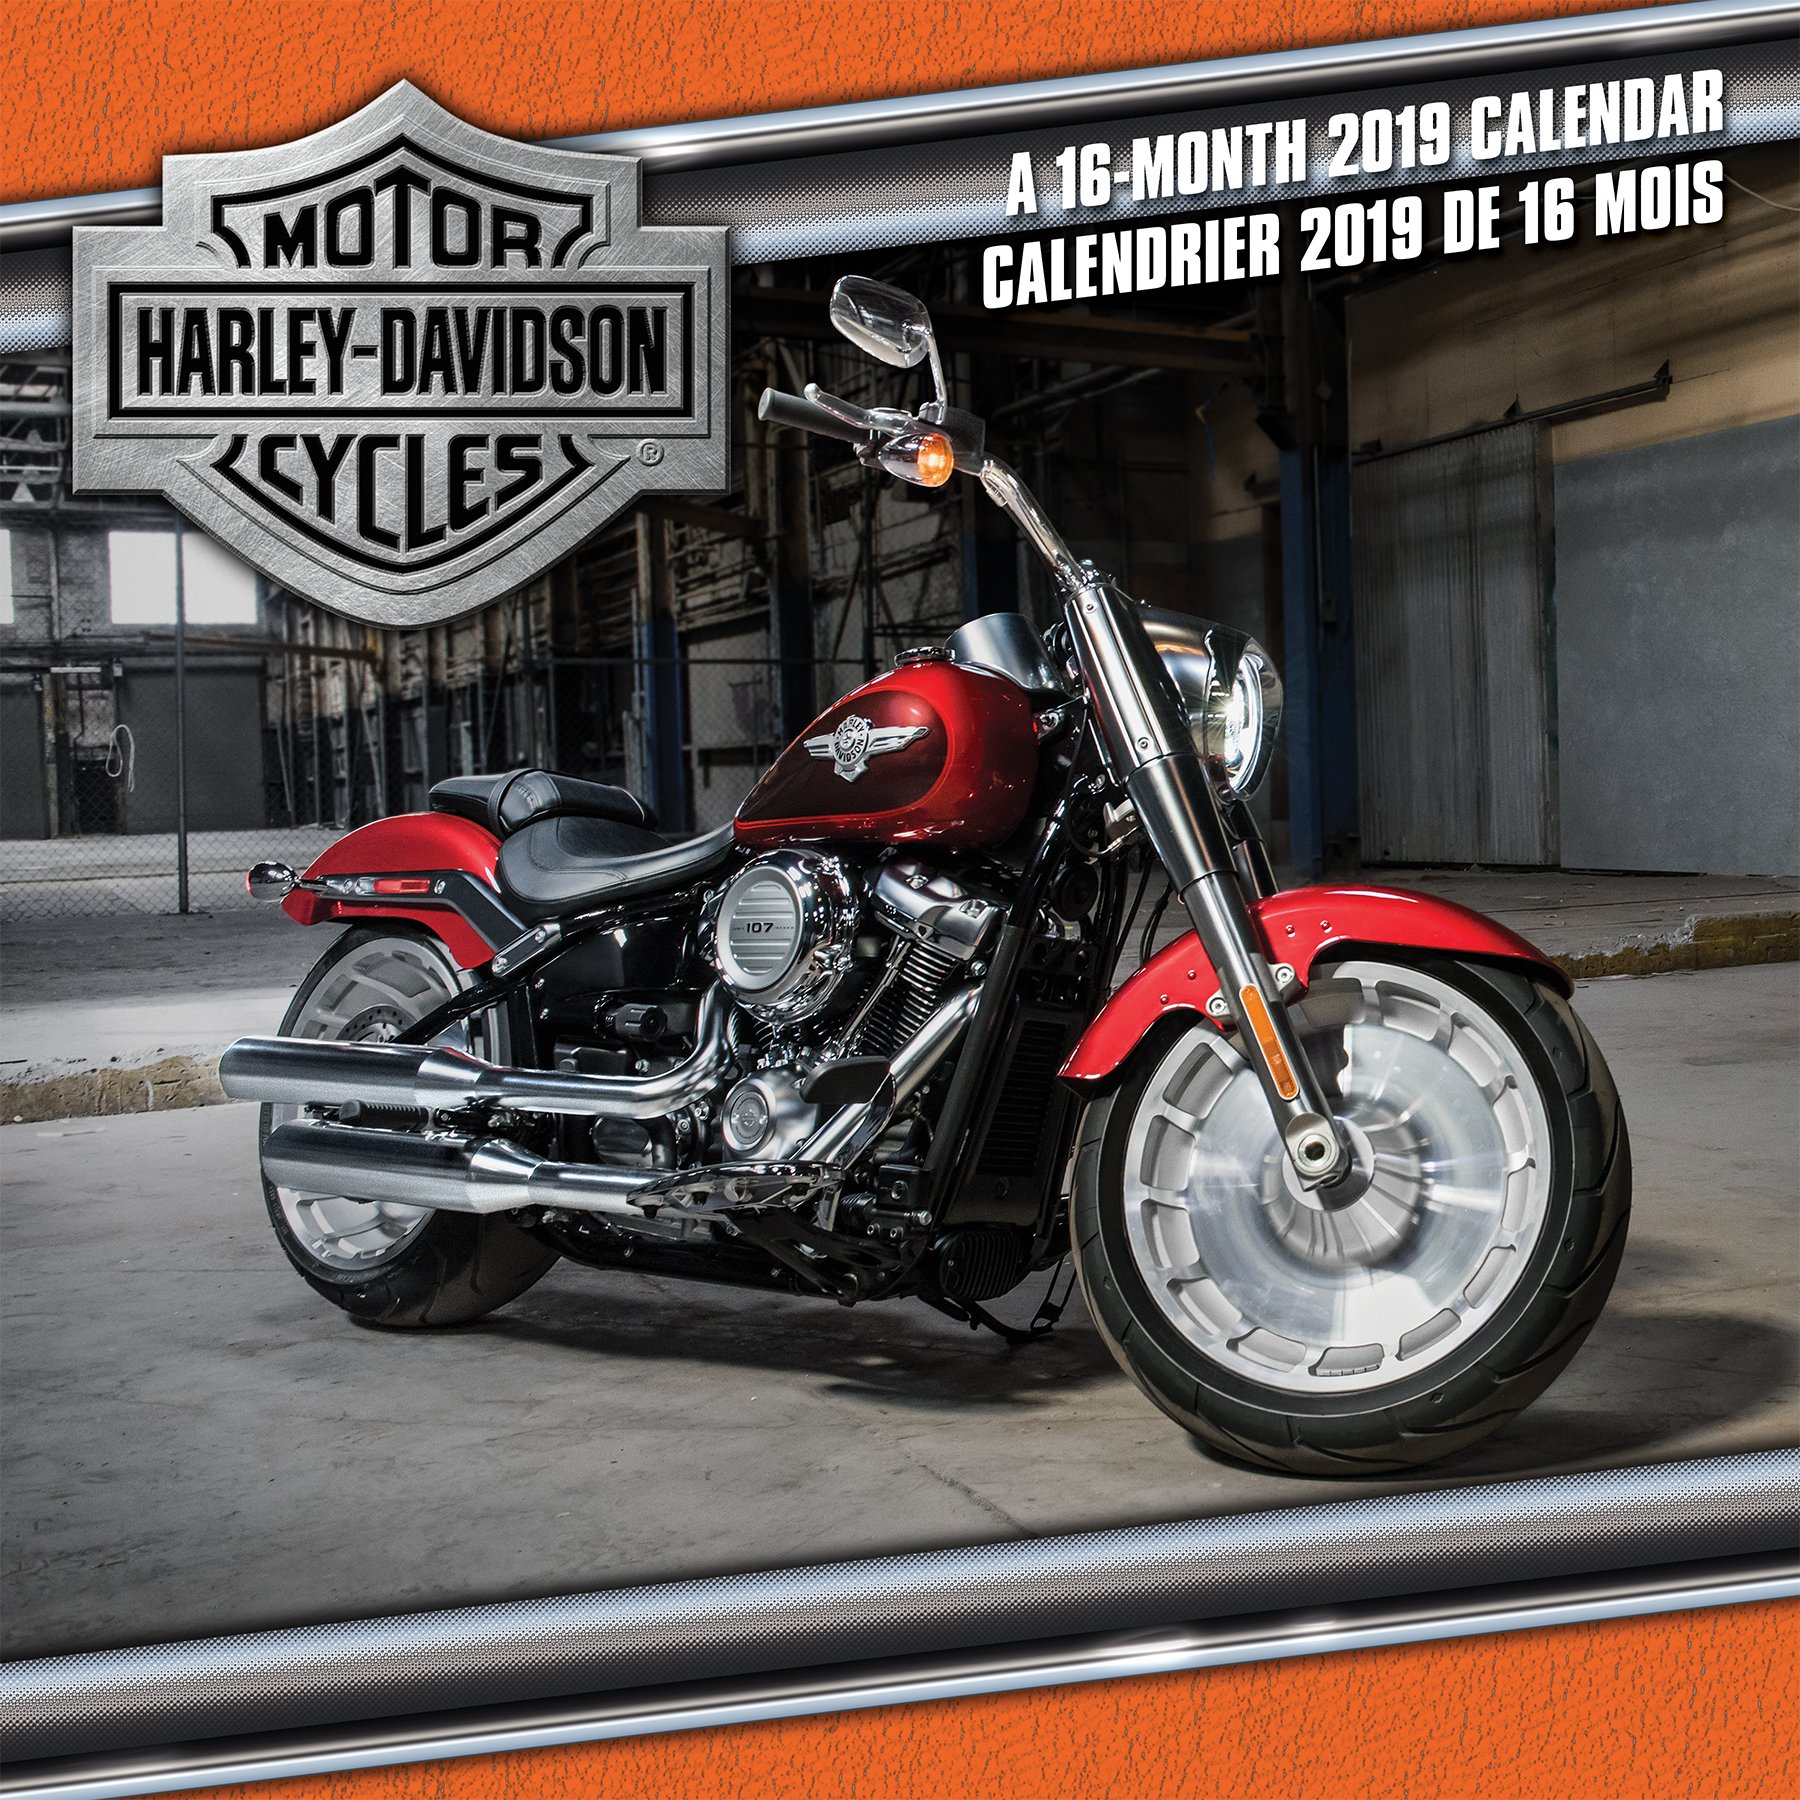 2019 Harley Davidson (Bilingual FRE) Wall Calendar (English and